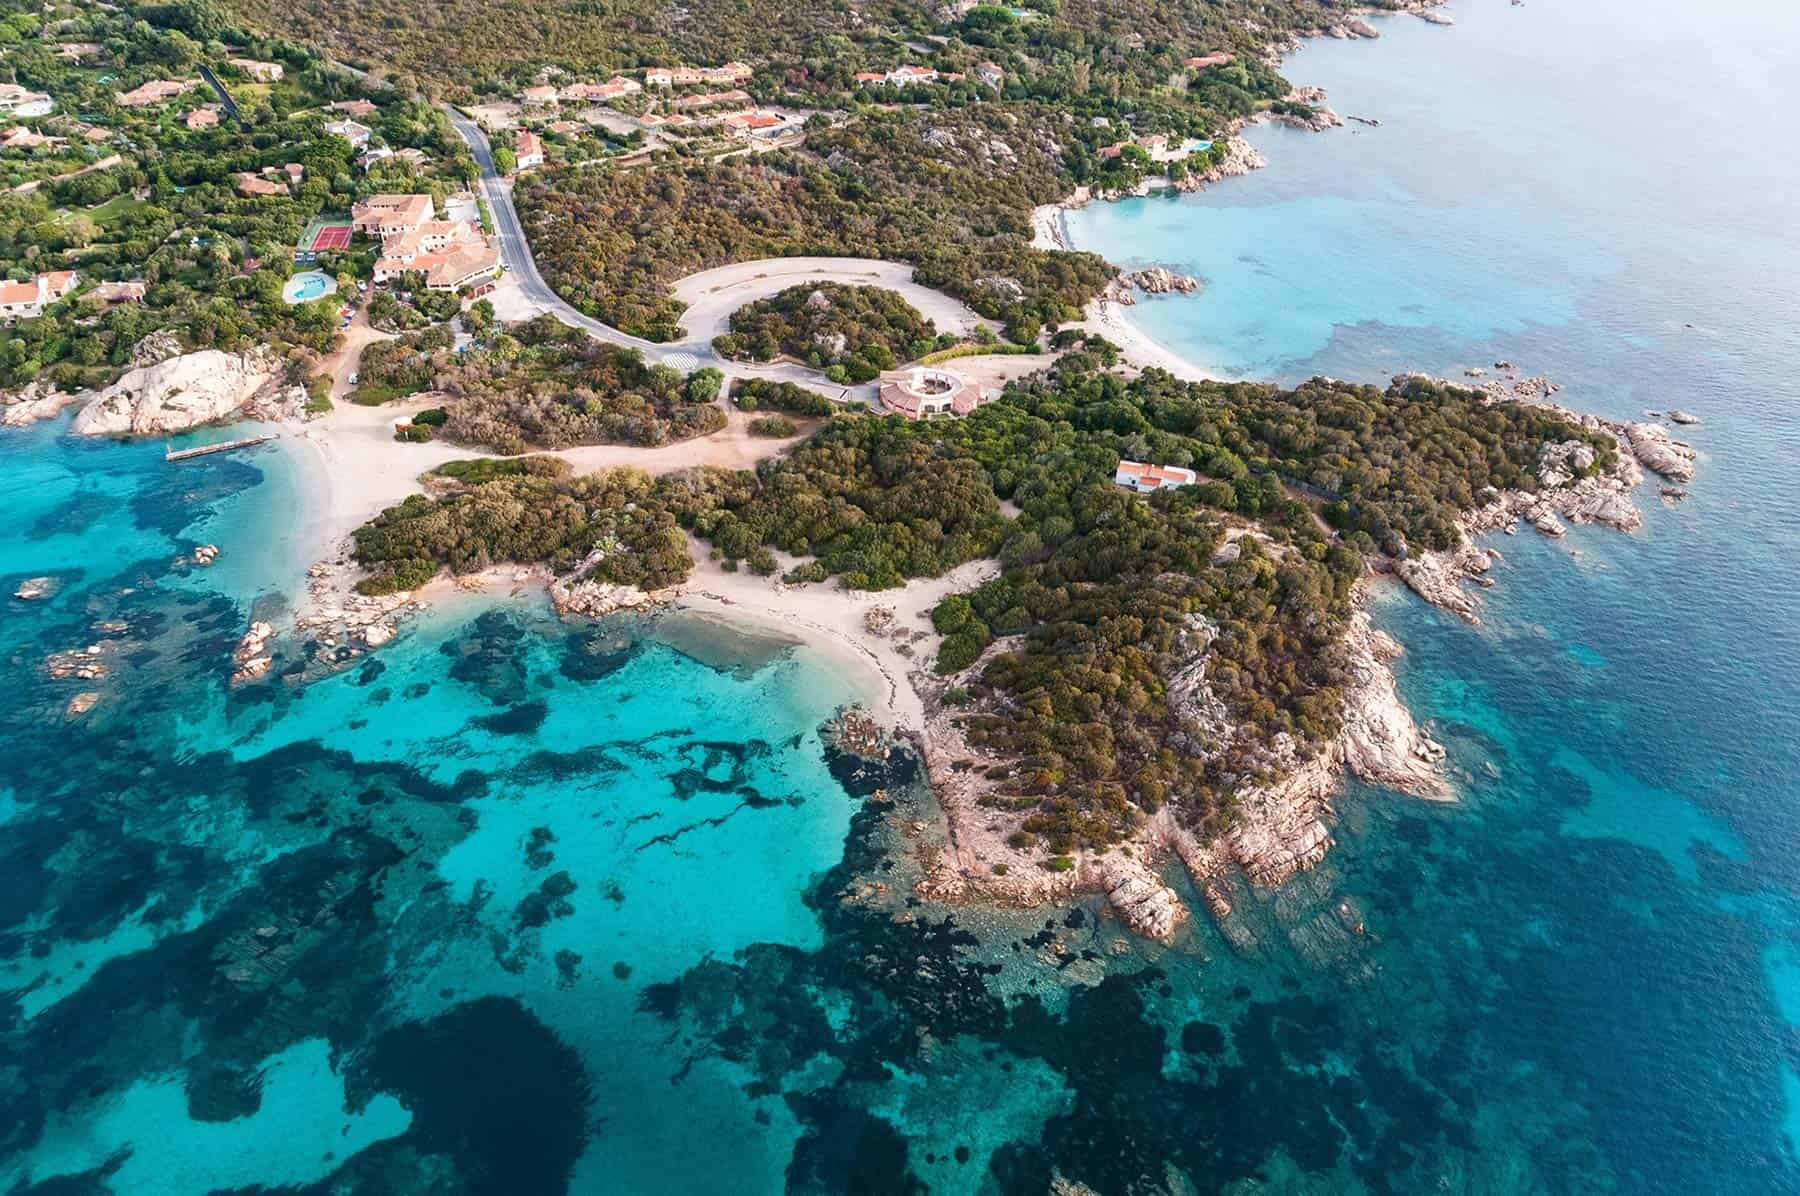 Costa Smeralda beaches